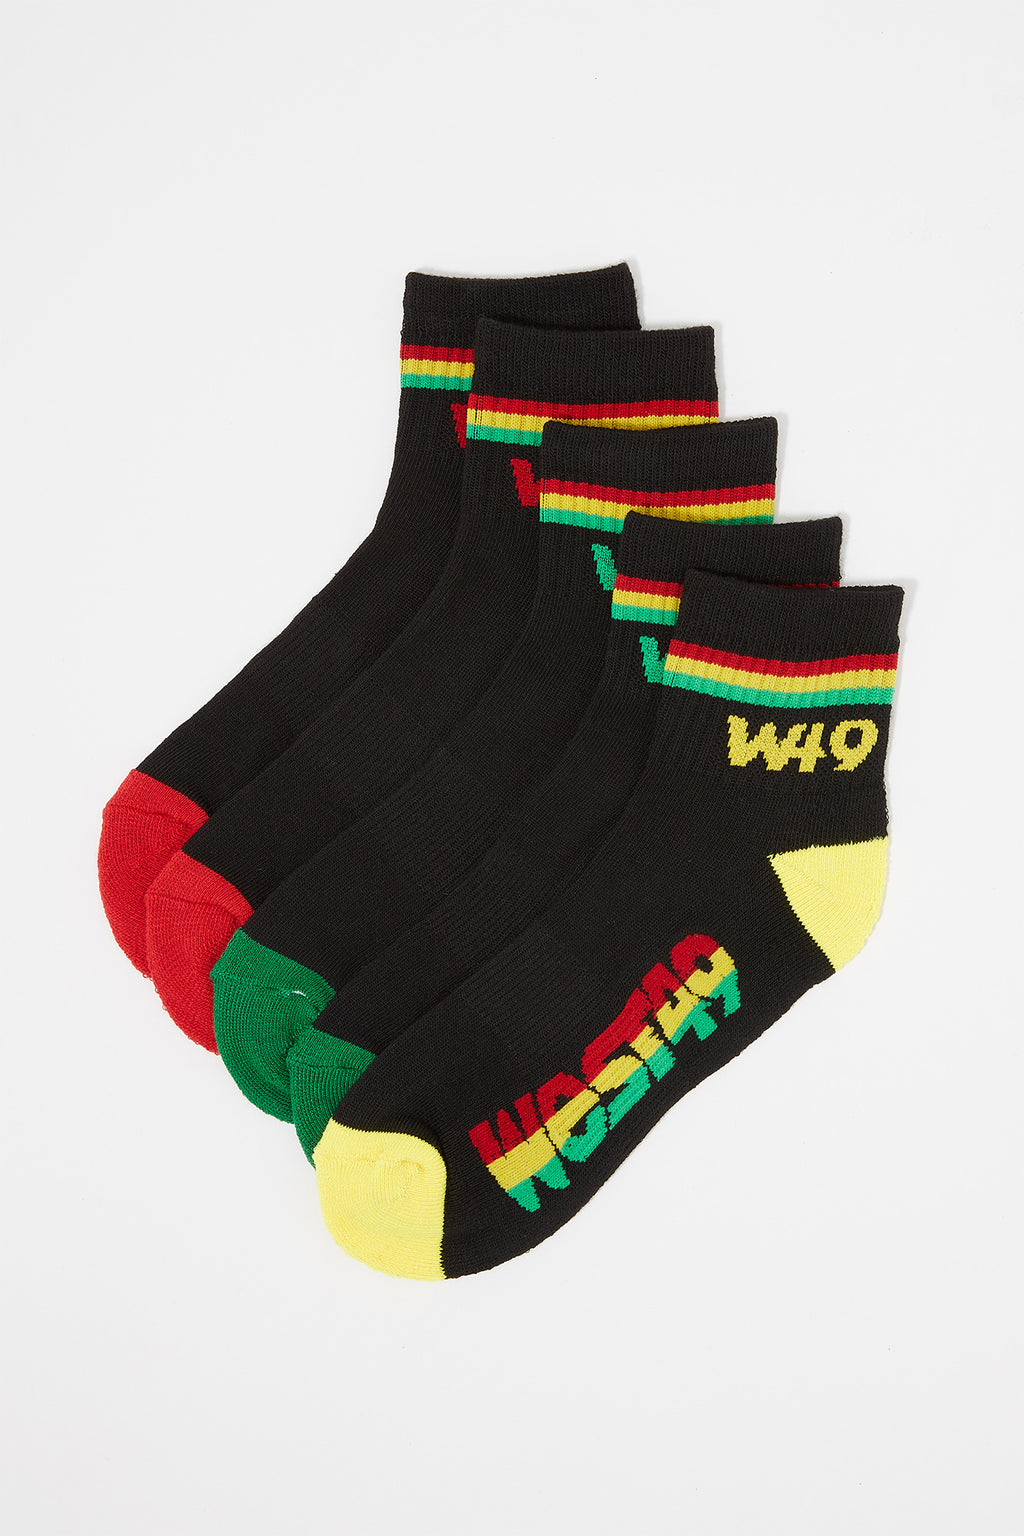 West49 Boys Athletic Crew Socks (5 Pairs)